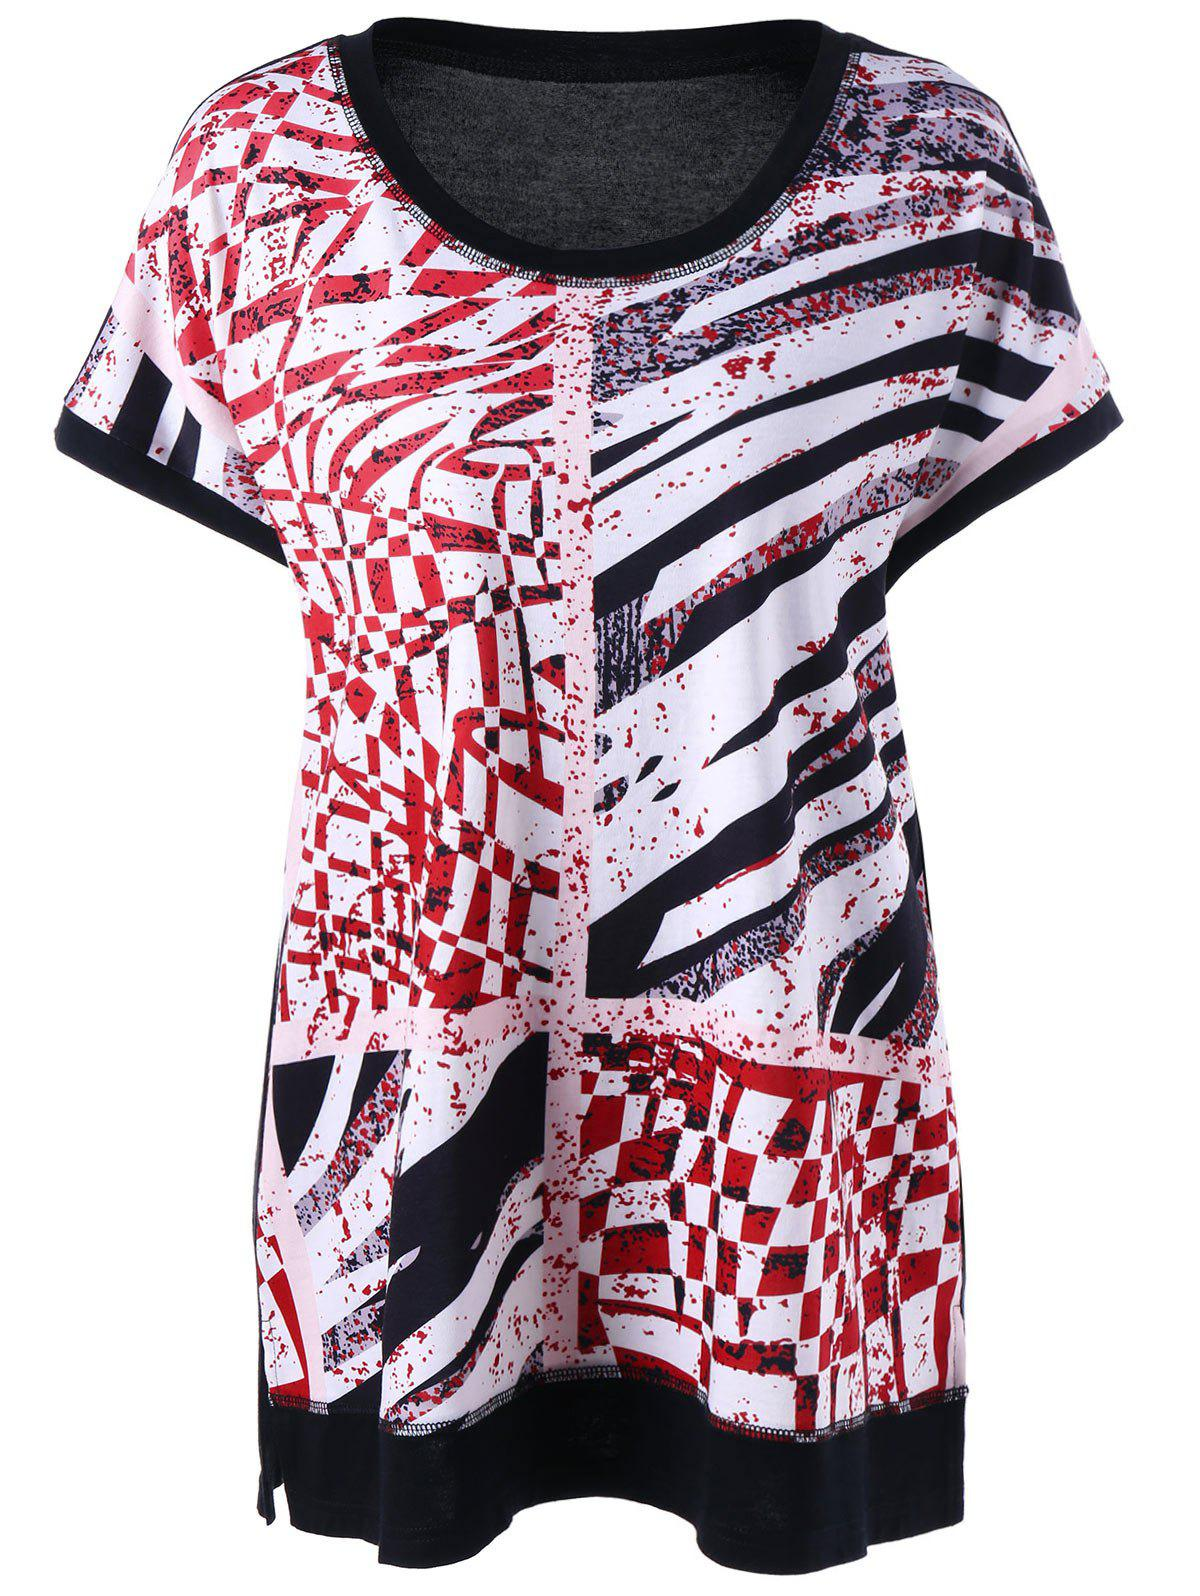 2018 plus size side slit graphic t shirt black white red for T shirt graphics for sale